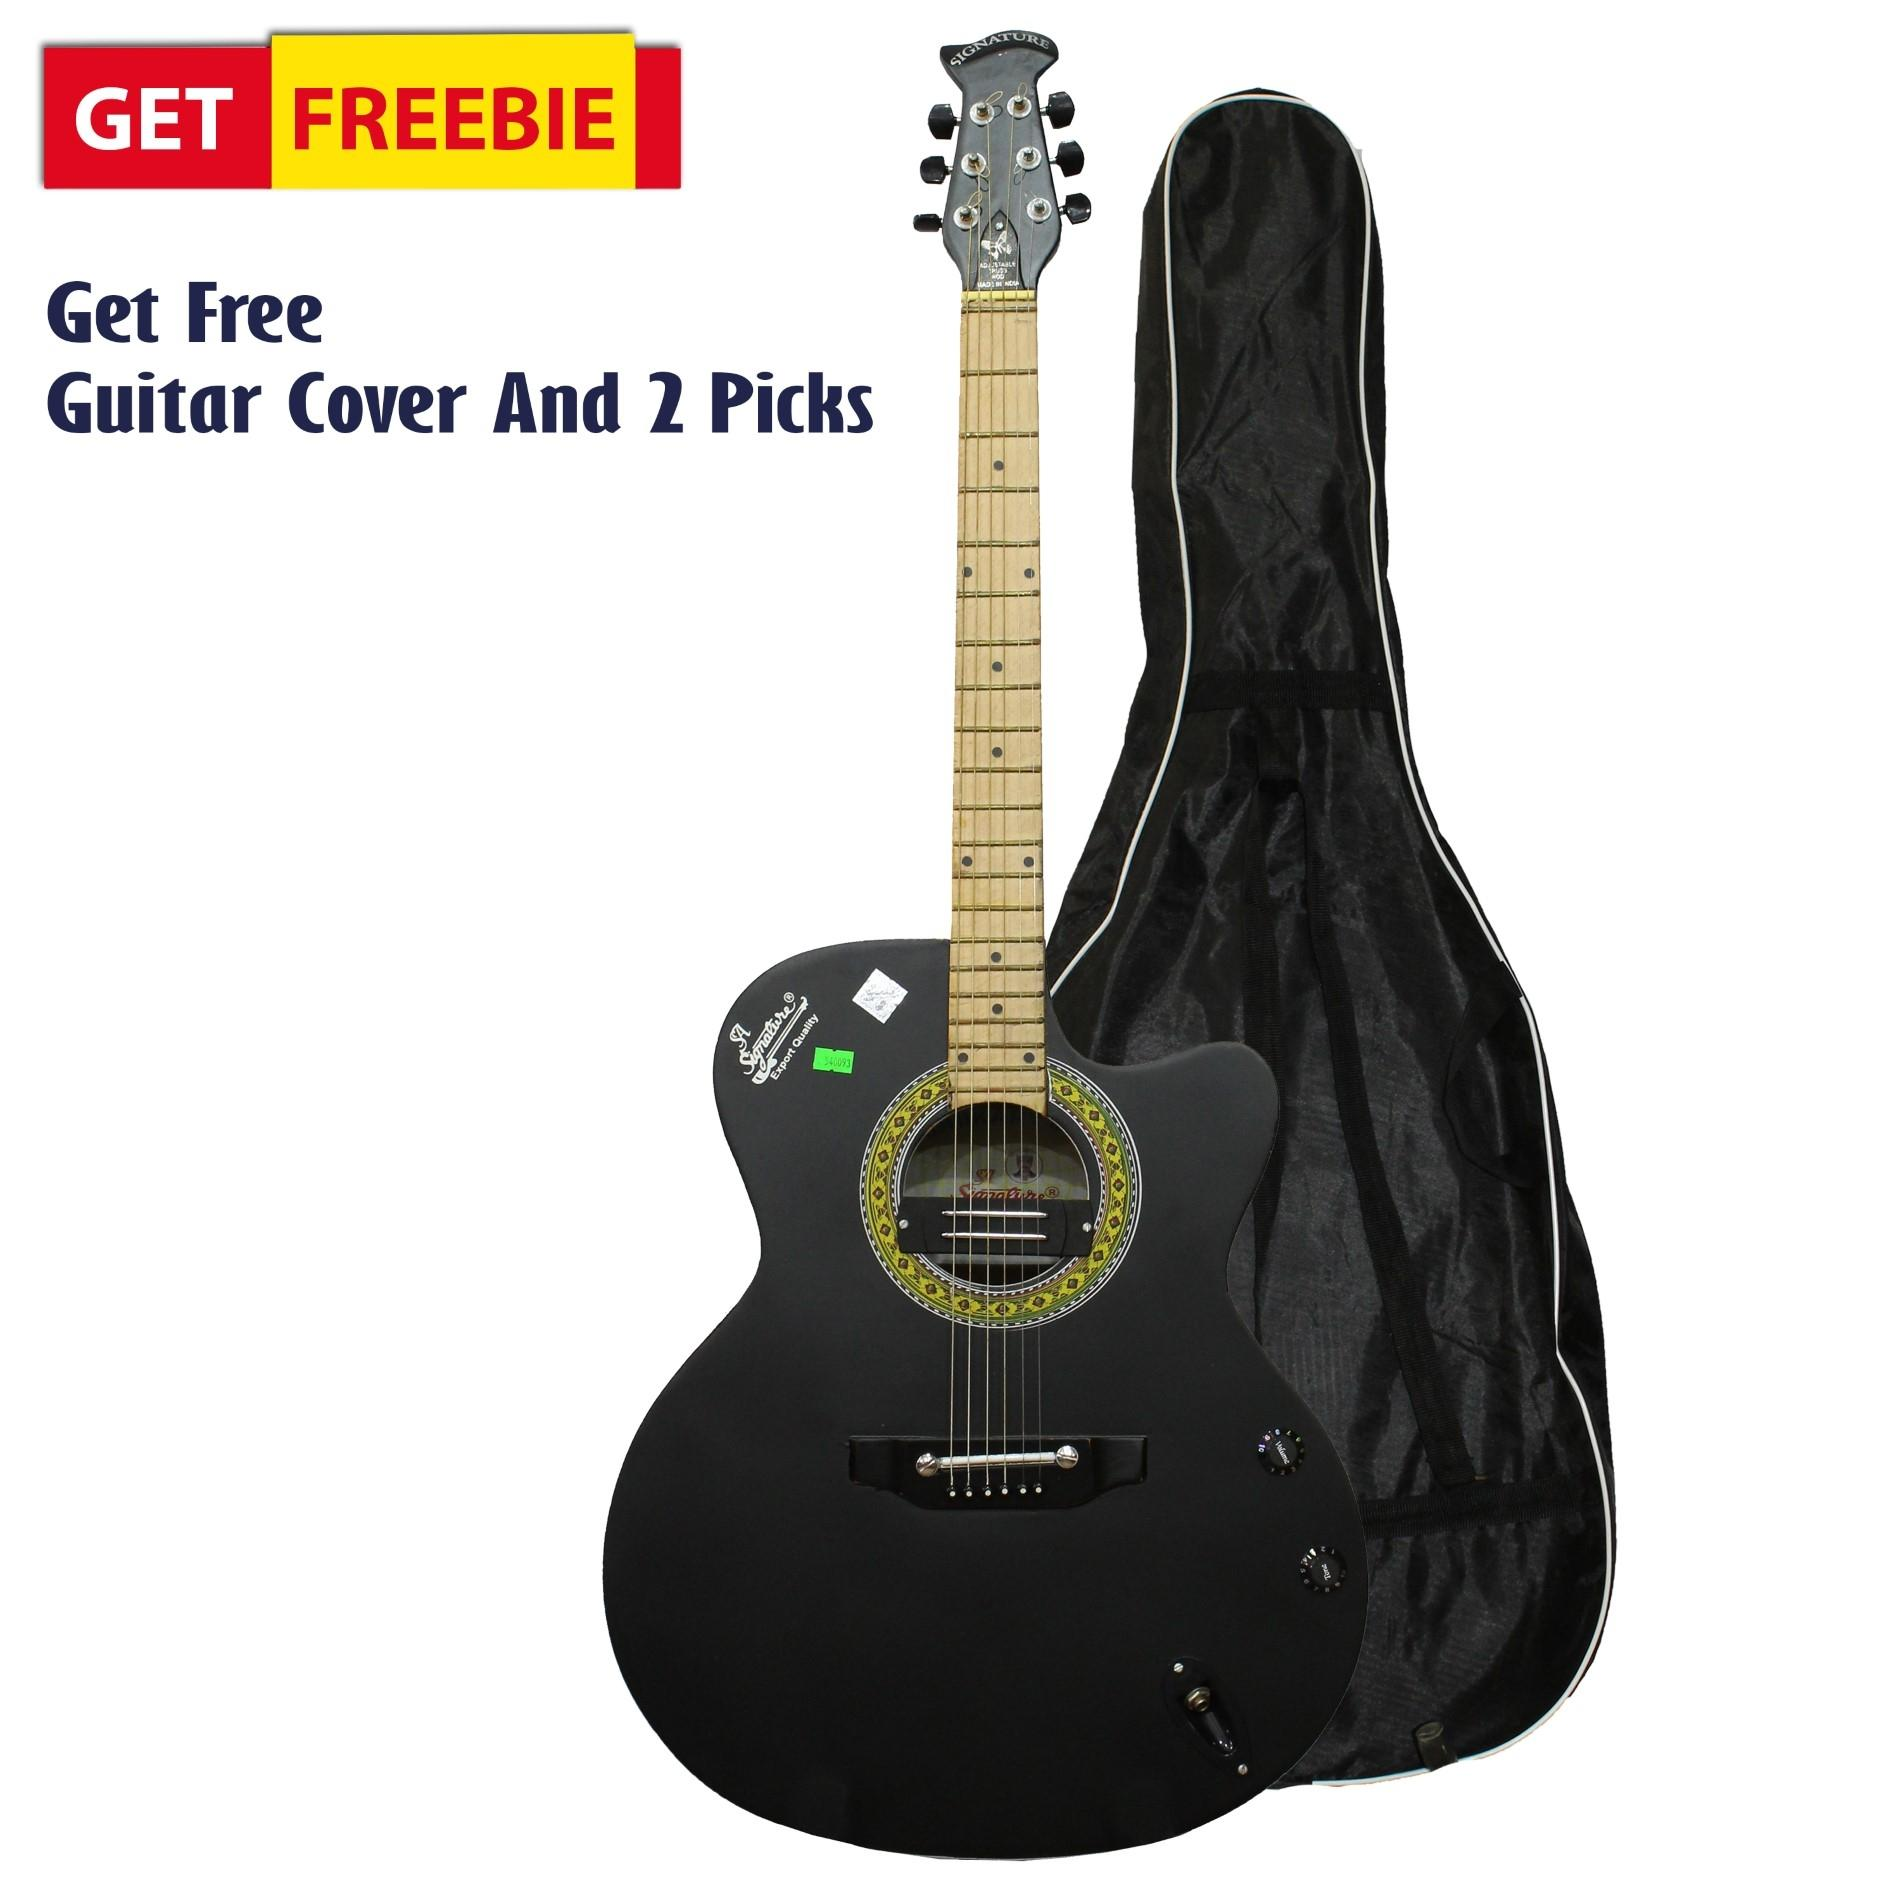 Matte Black Indian Guitar With Free Cover And 2 Picks